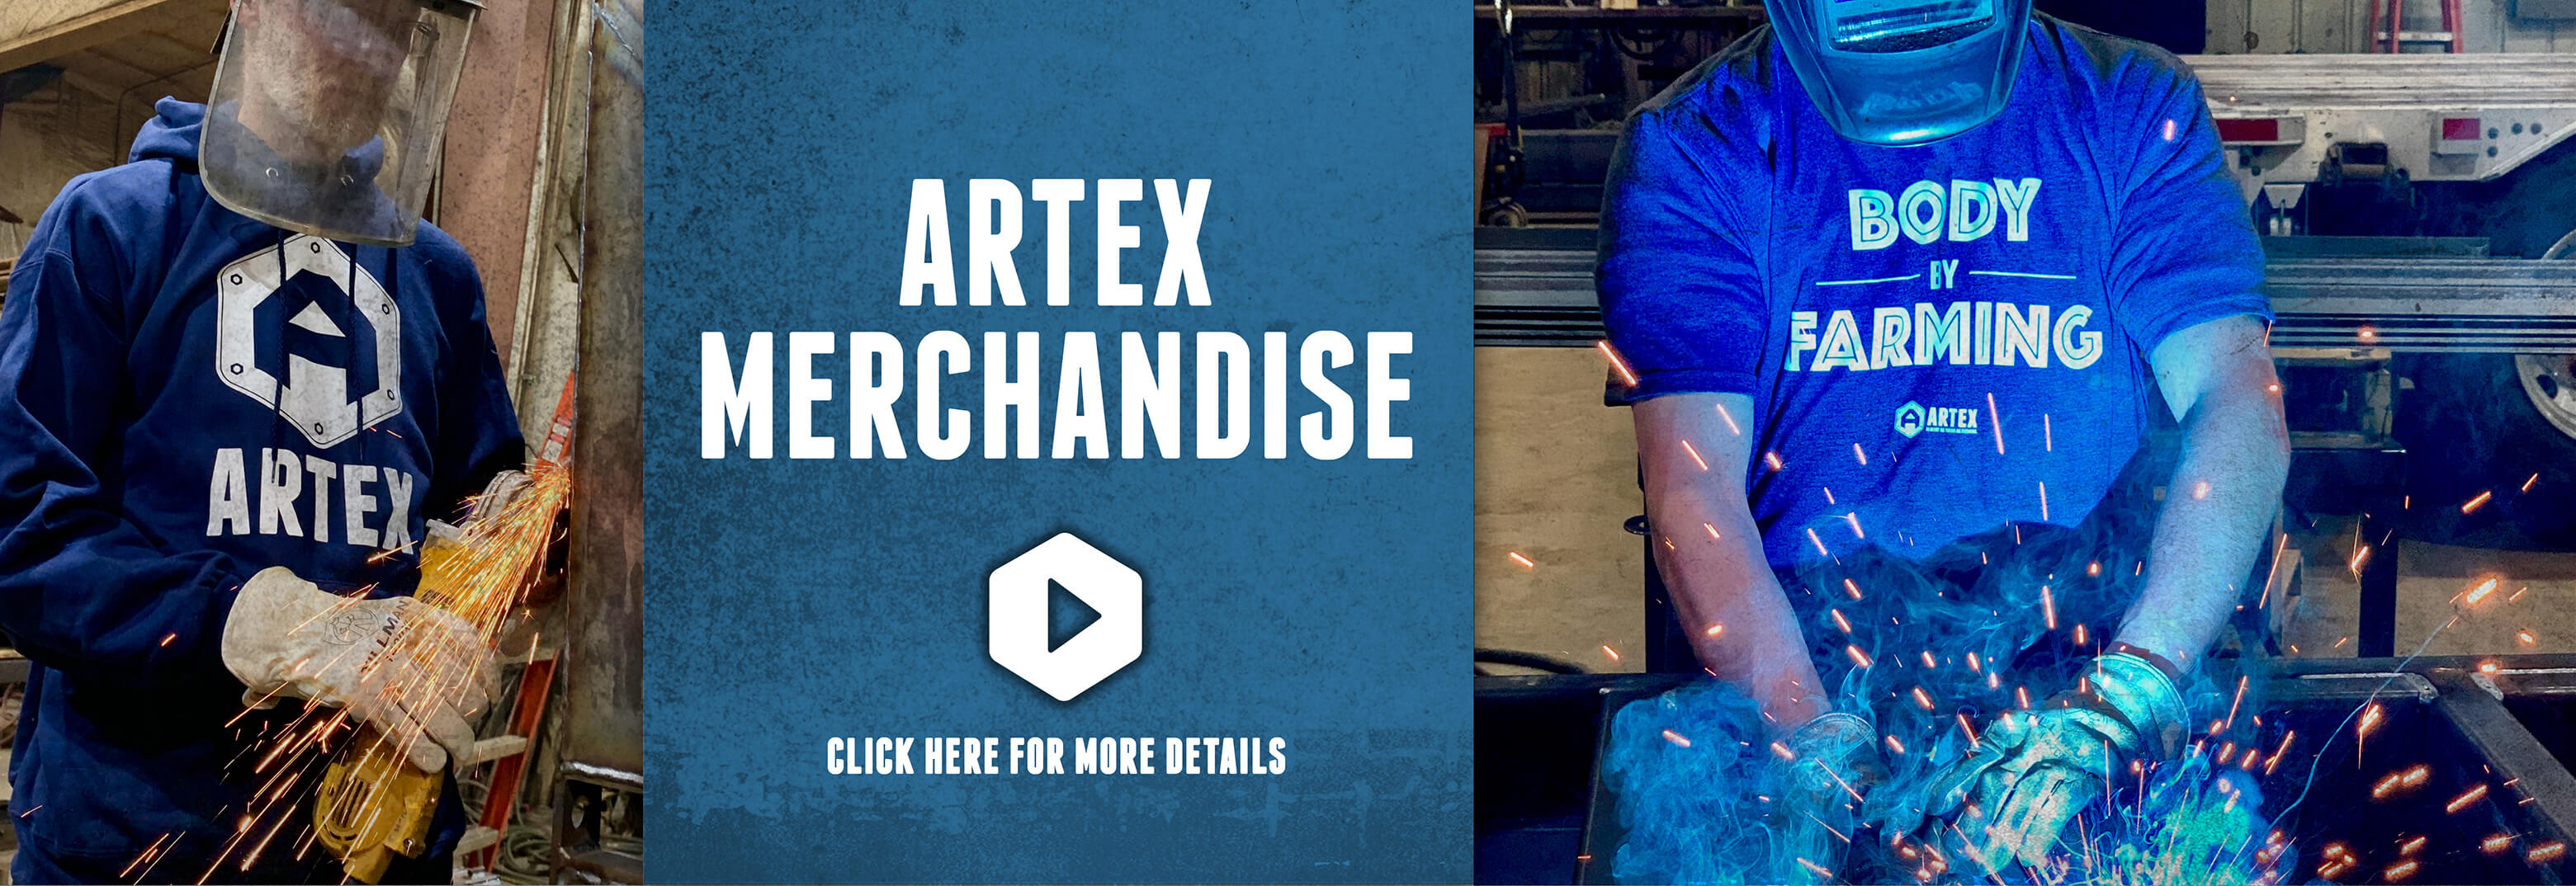 artex merchandise blue